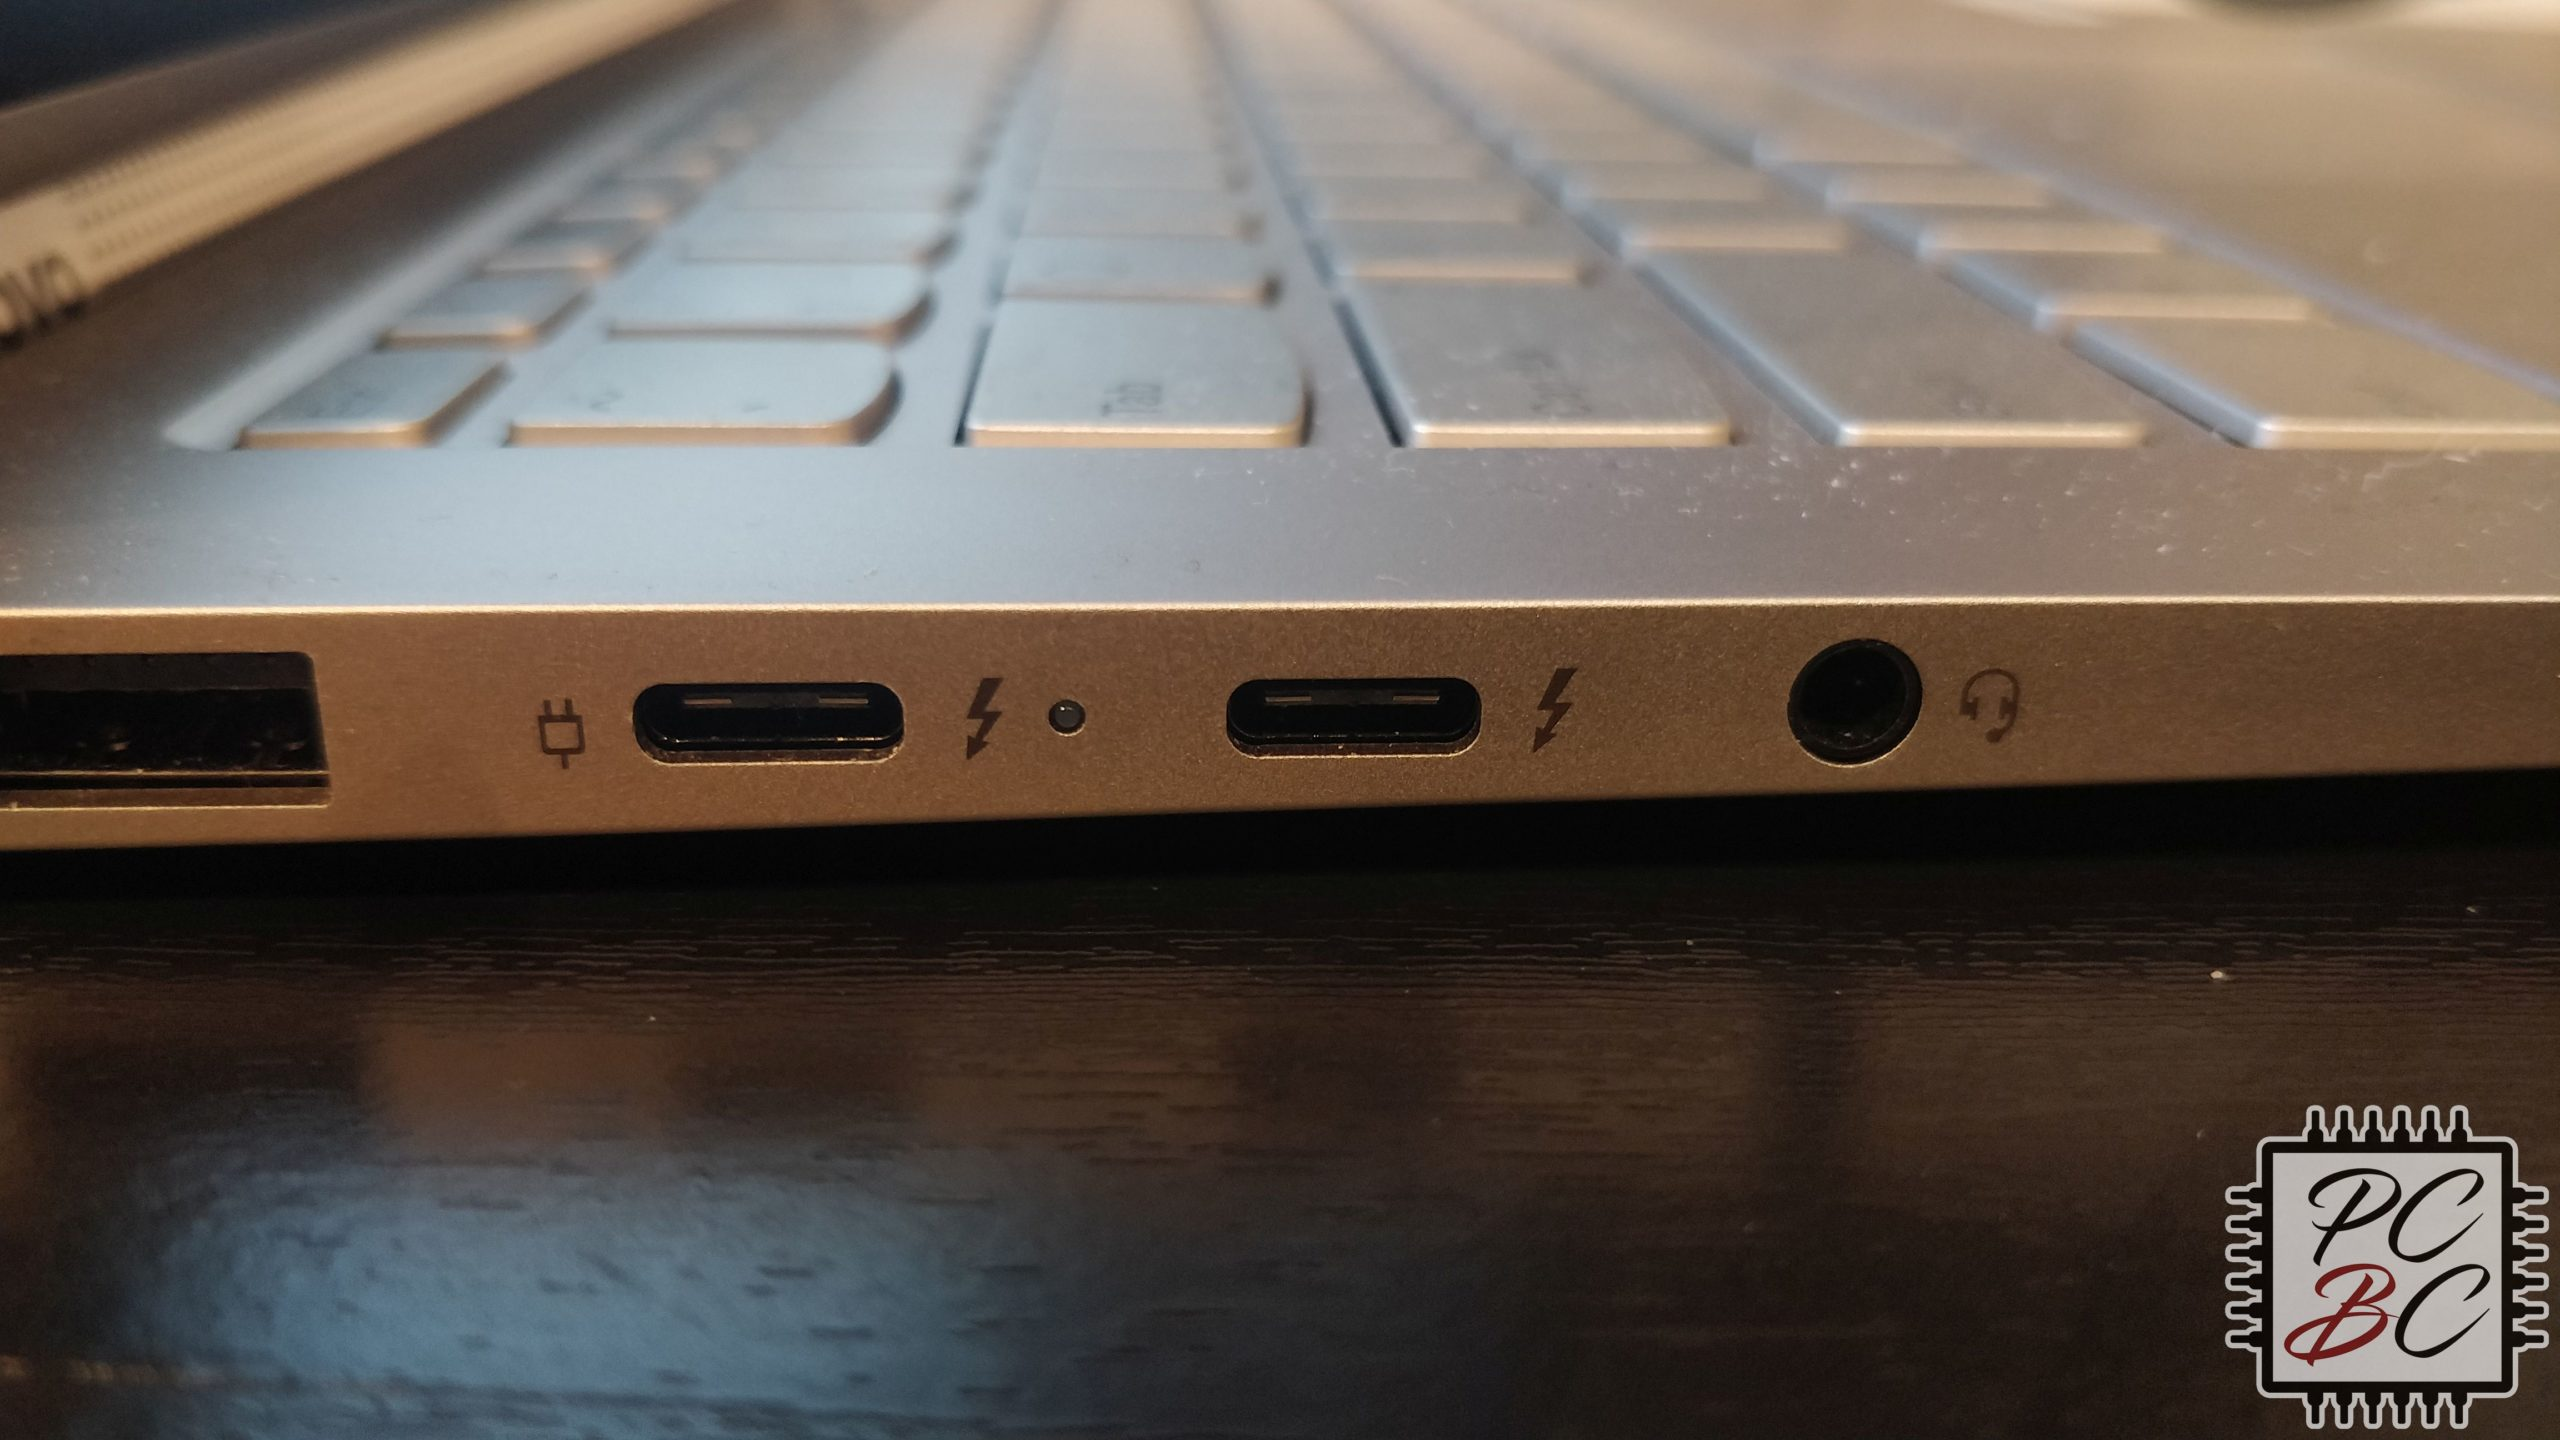 Thunderbolt 3 Ports Notebook USB-C Dock